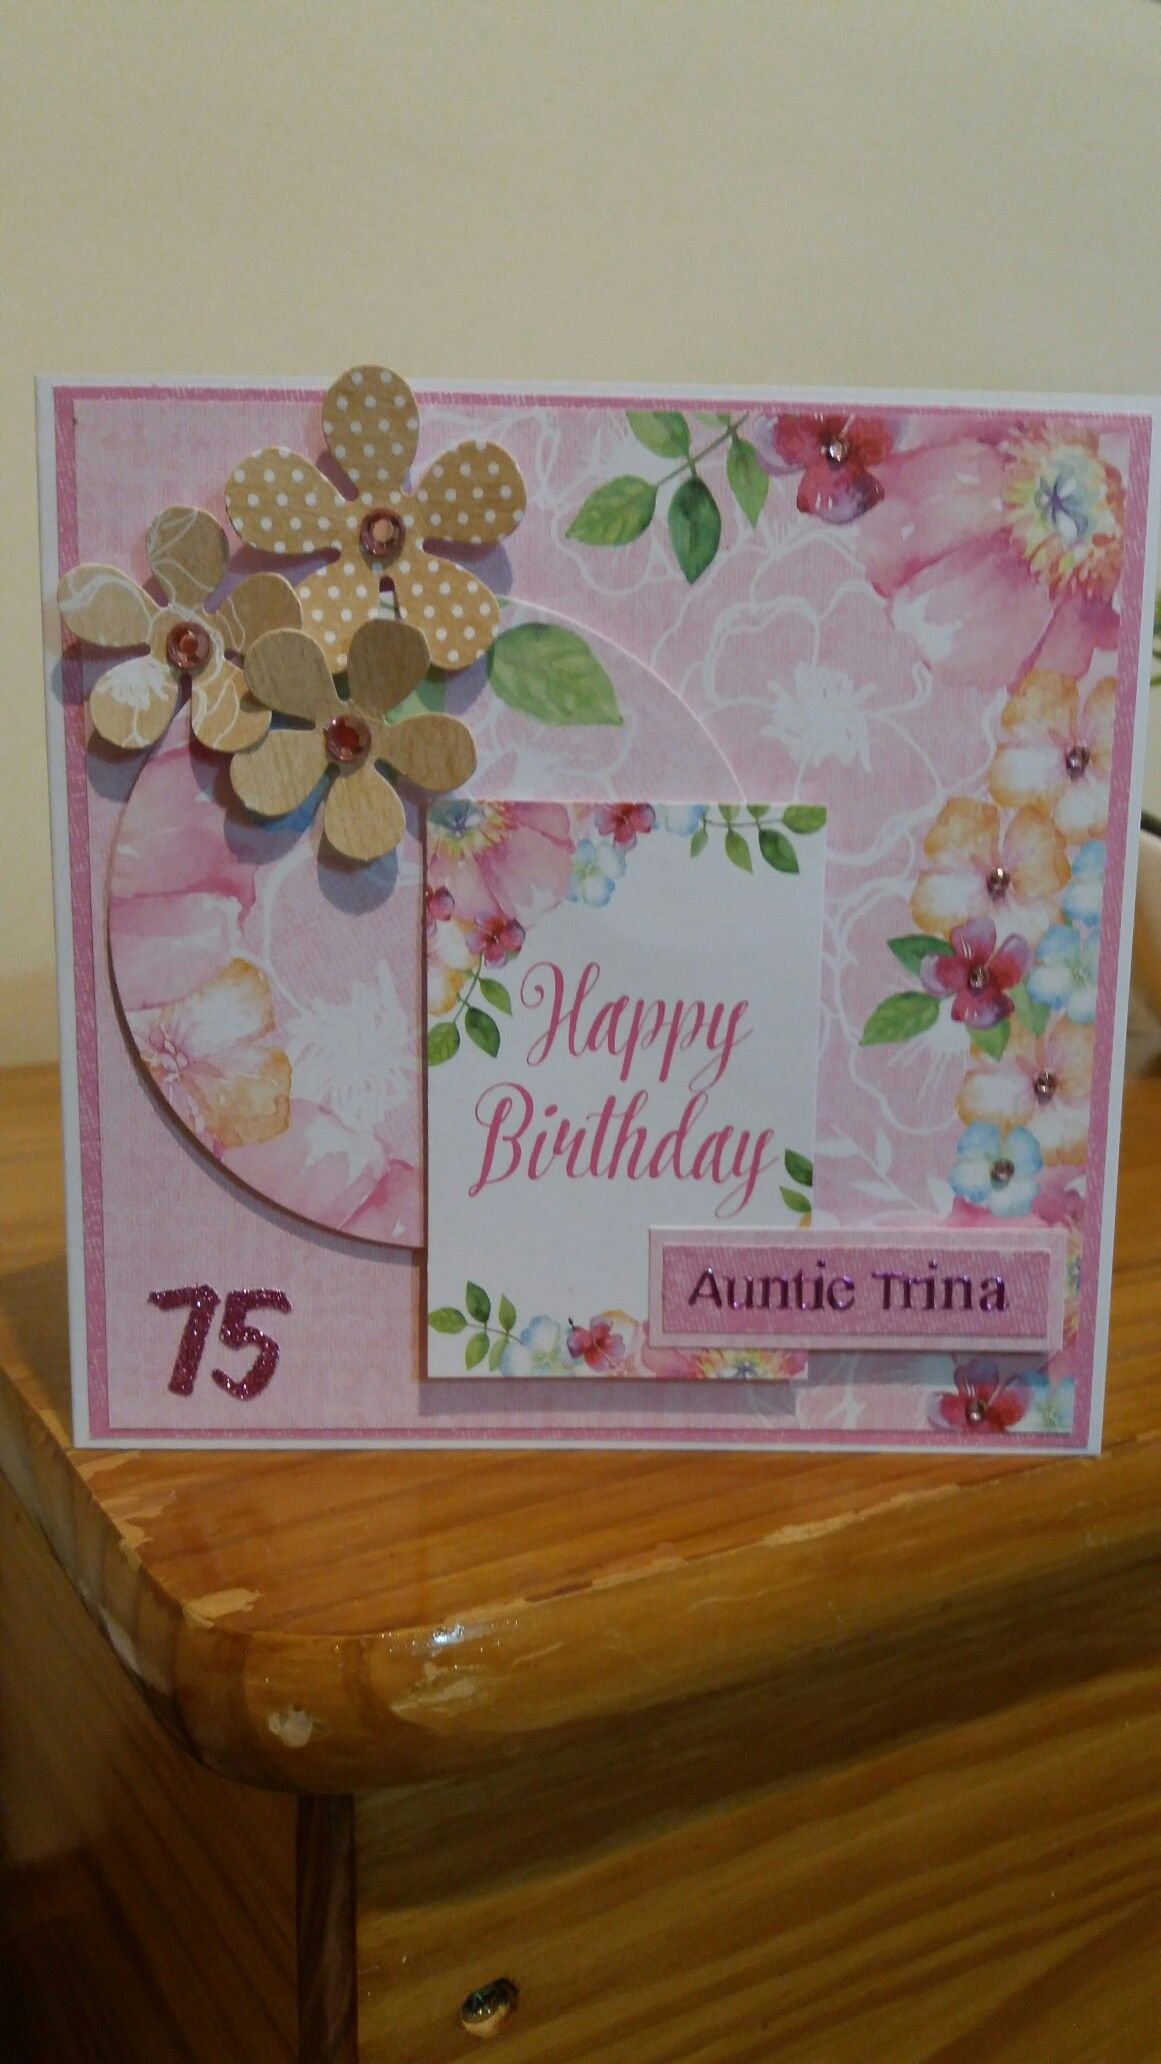 75th birthday card made with Craftwork cards floral boutique.